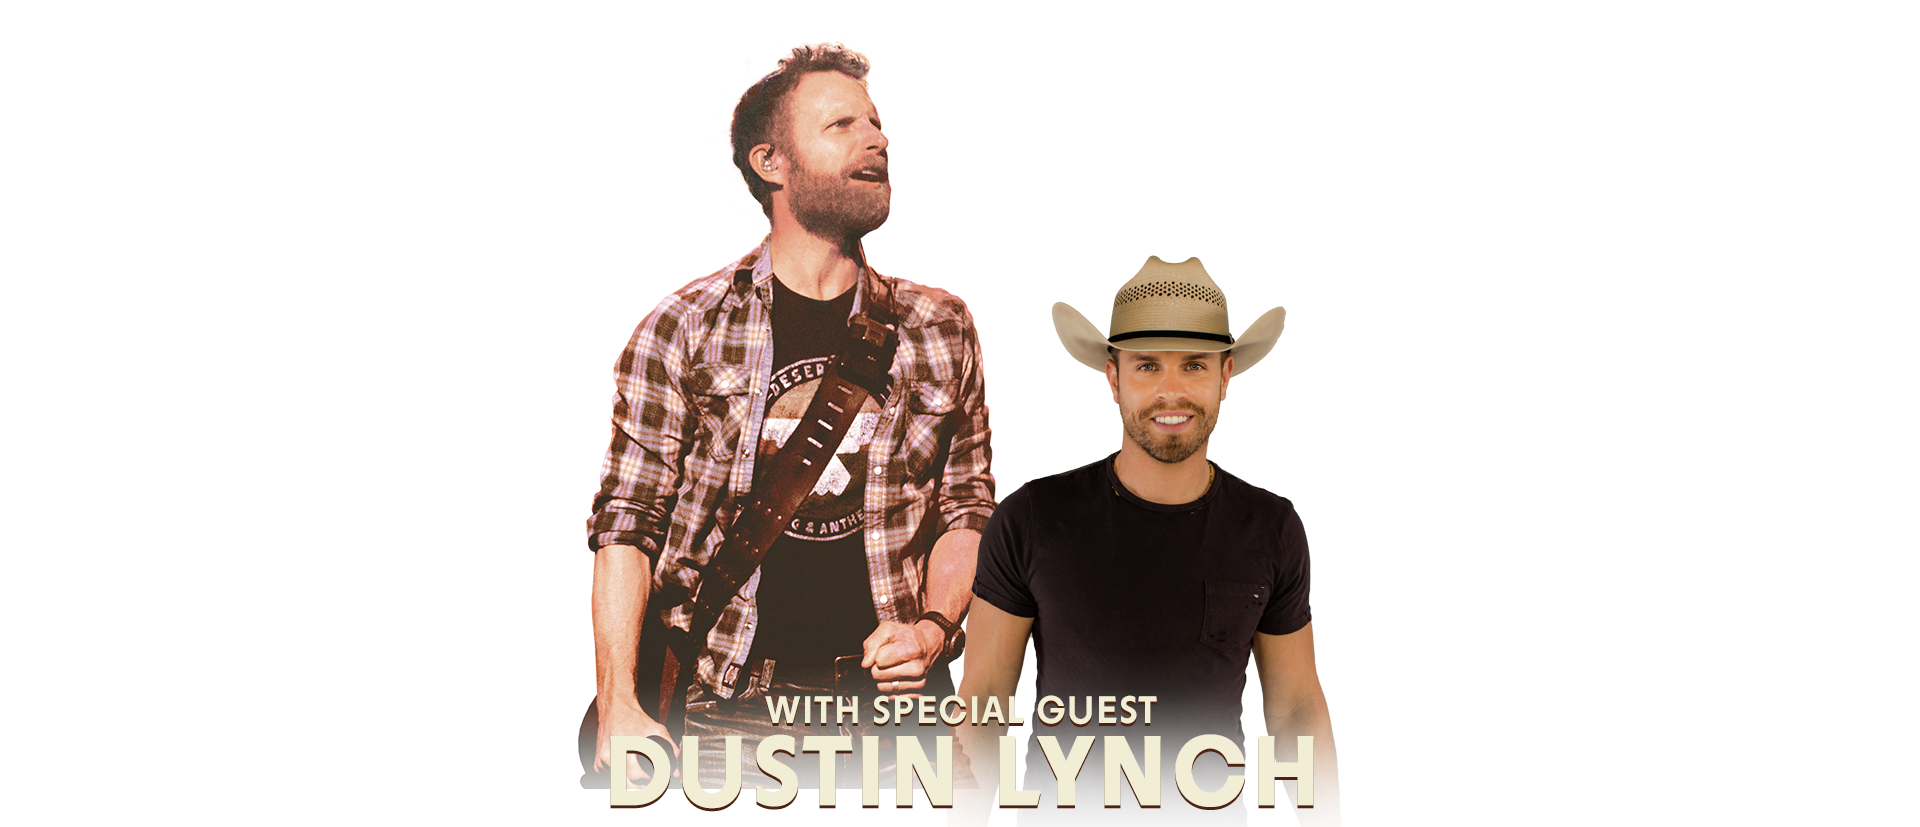 with Special Guest: Dustin Lynch